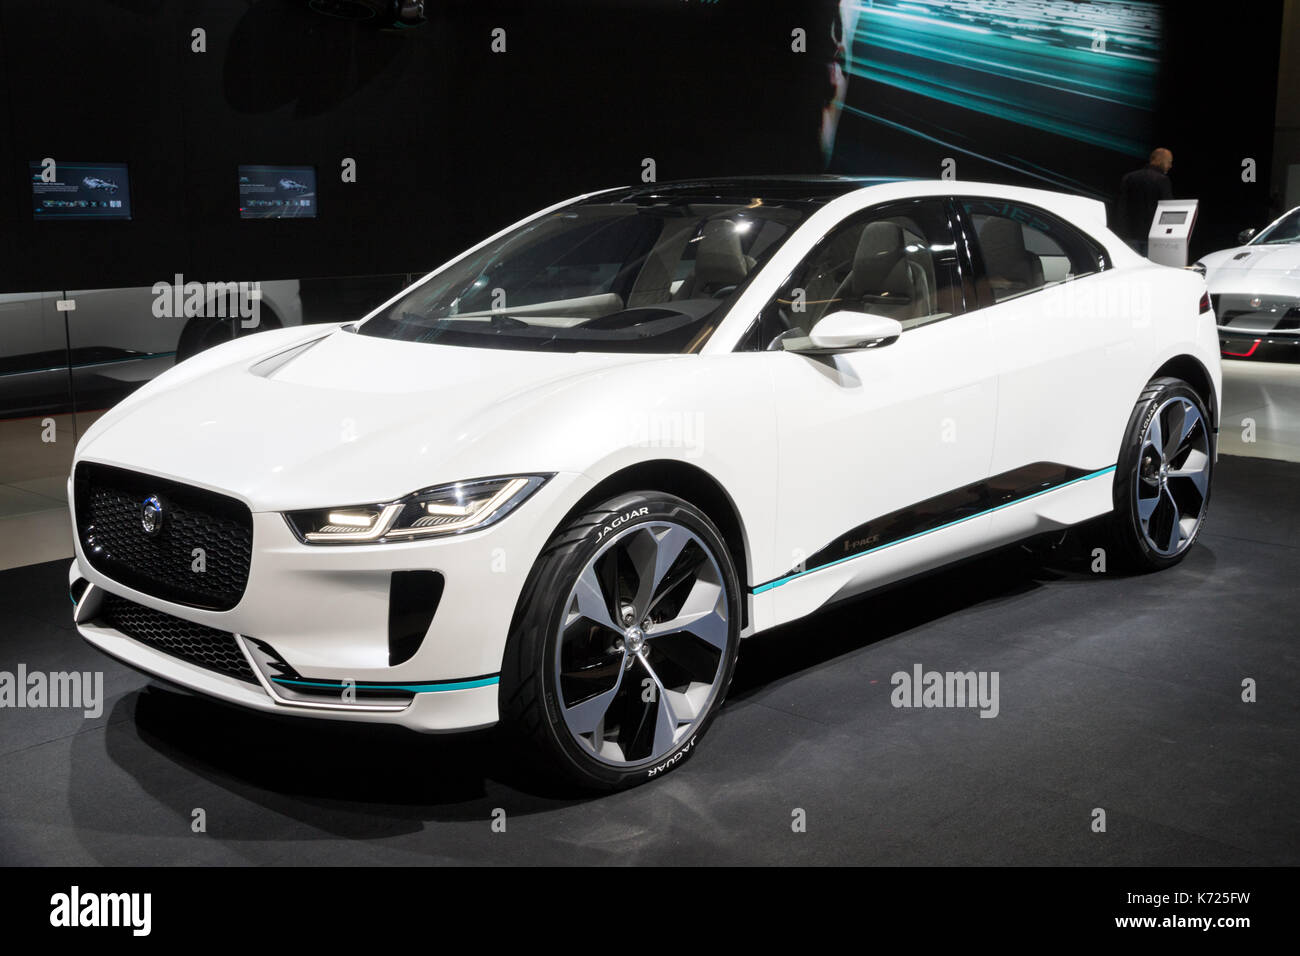 Frankfurt, Germany. 12th Sep, 2017. New 2018 Jaguar I Pace Concept Electric  SUV Car Showcased At The Frankfurt IAA Motor Show 2017.